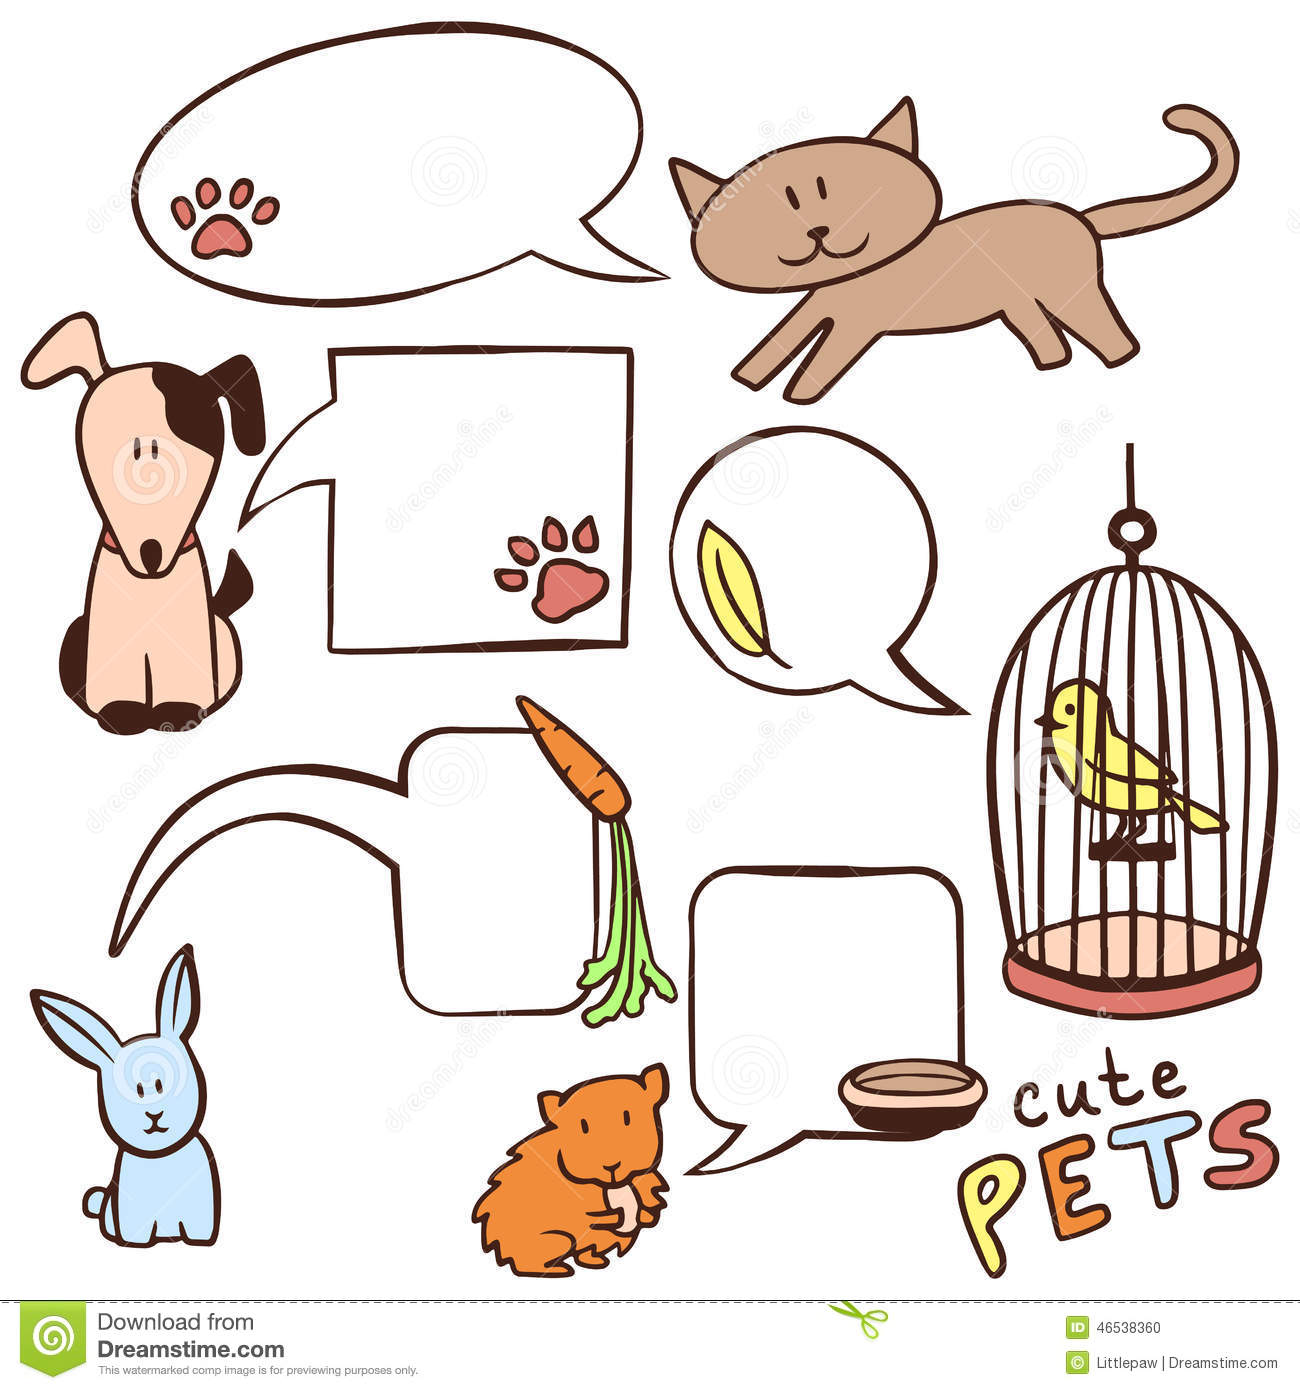 Cute hand drawn pets and speech bubbles